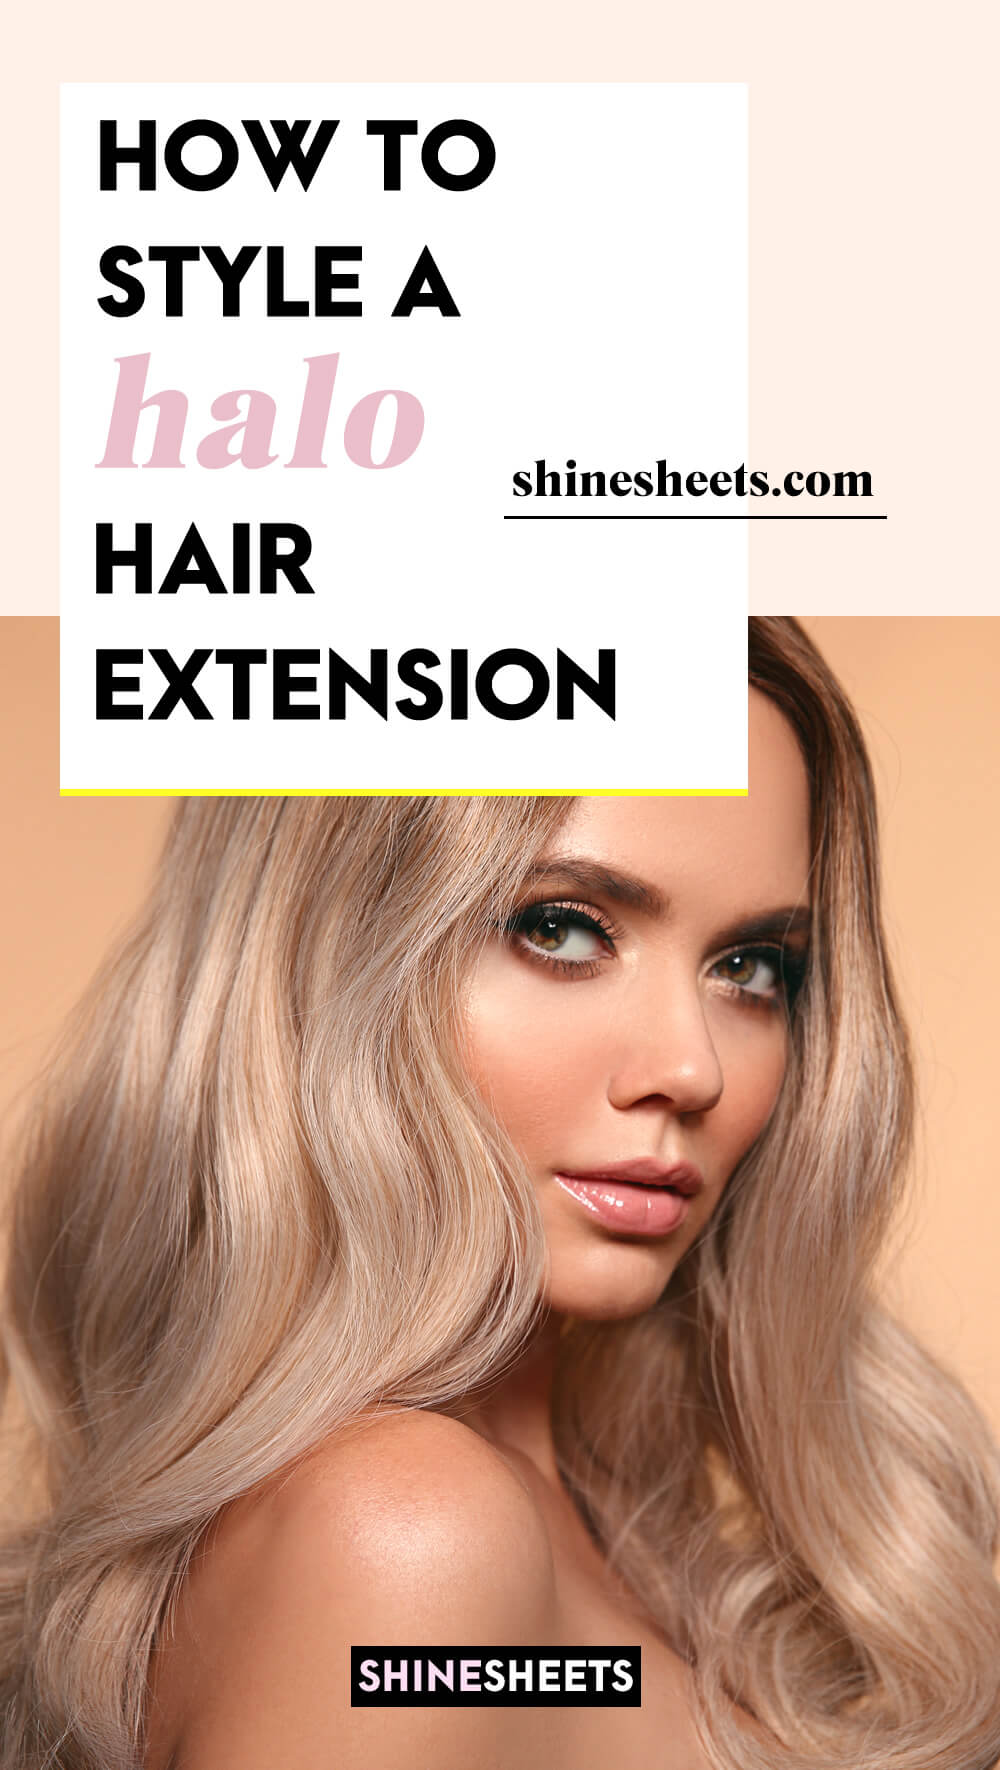 woman as an example on how to style halo hair extension